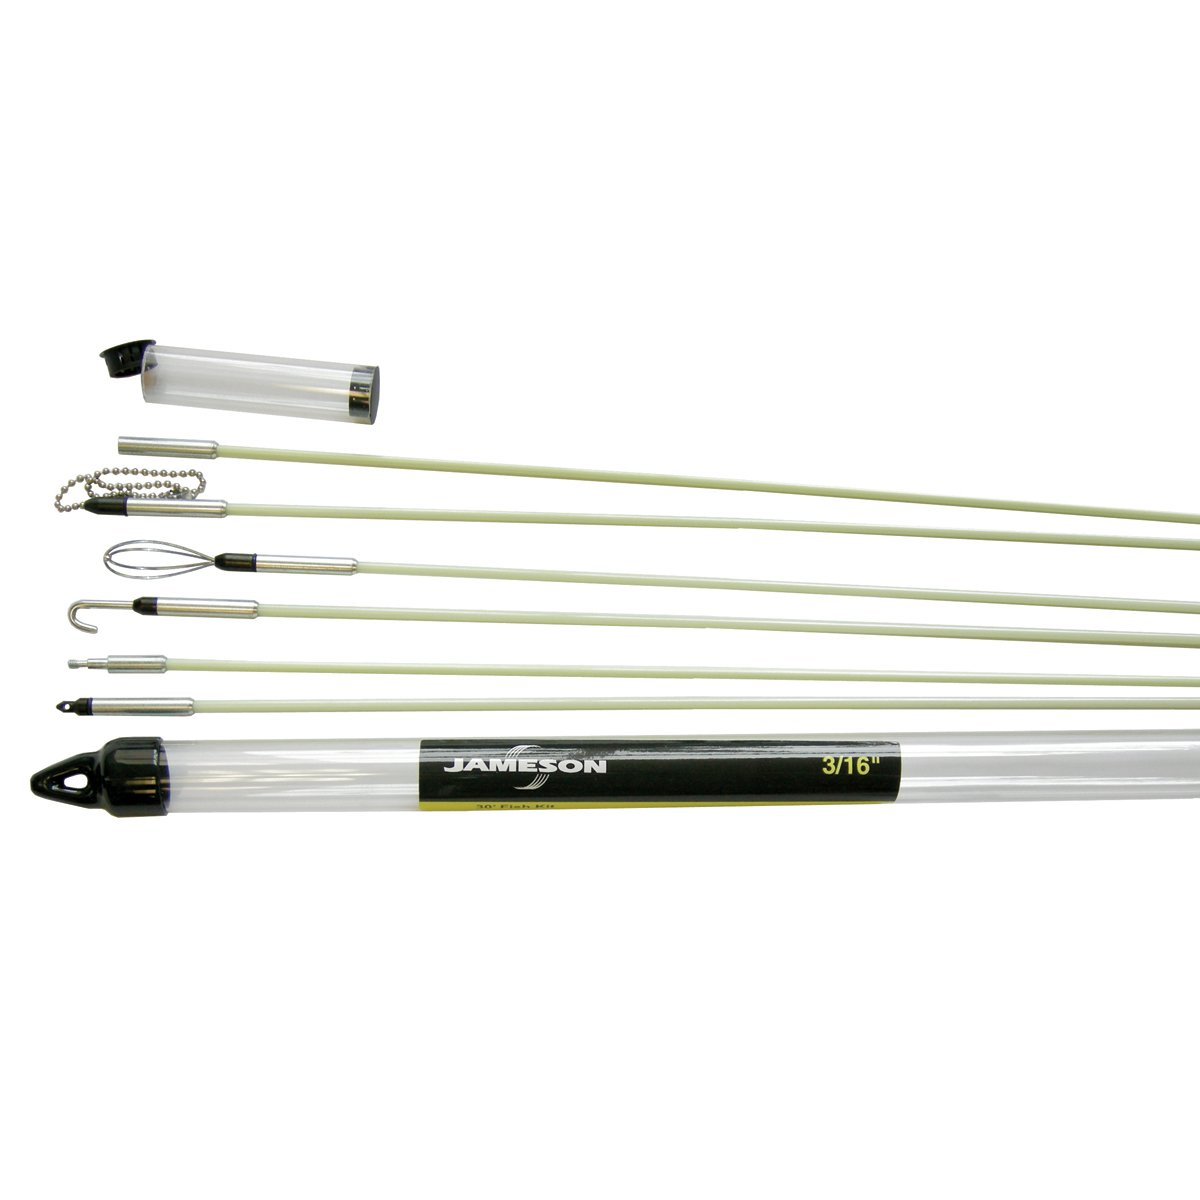 Jameson 7S-65K Deluxe Glow Rod Wire Electrical Fishing Kit with Accessories and 30 Total Feet of Fiberglass Rod